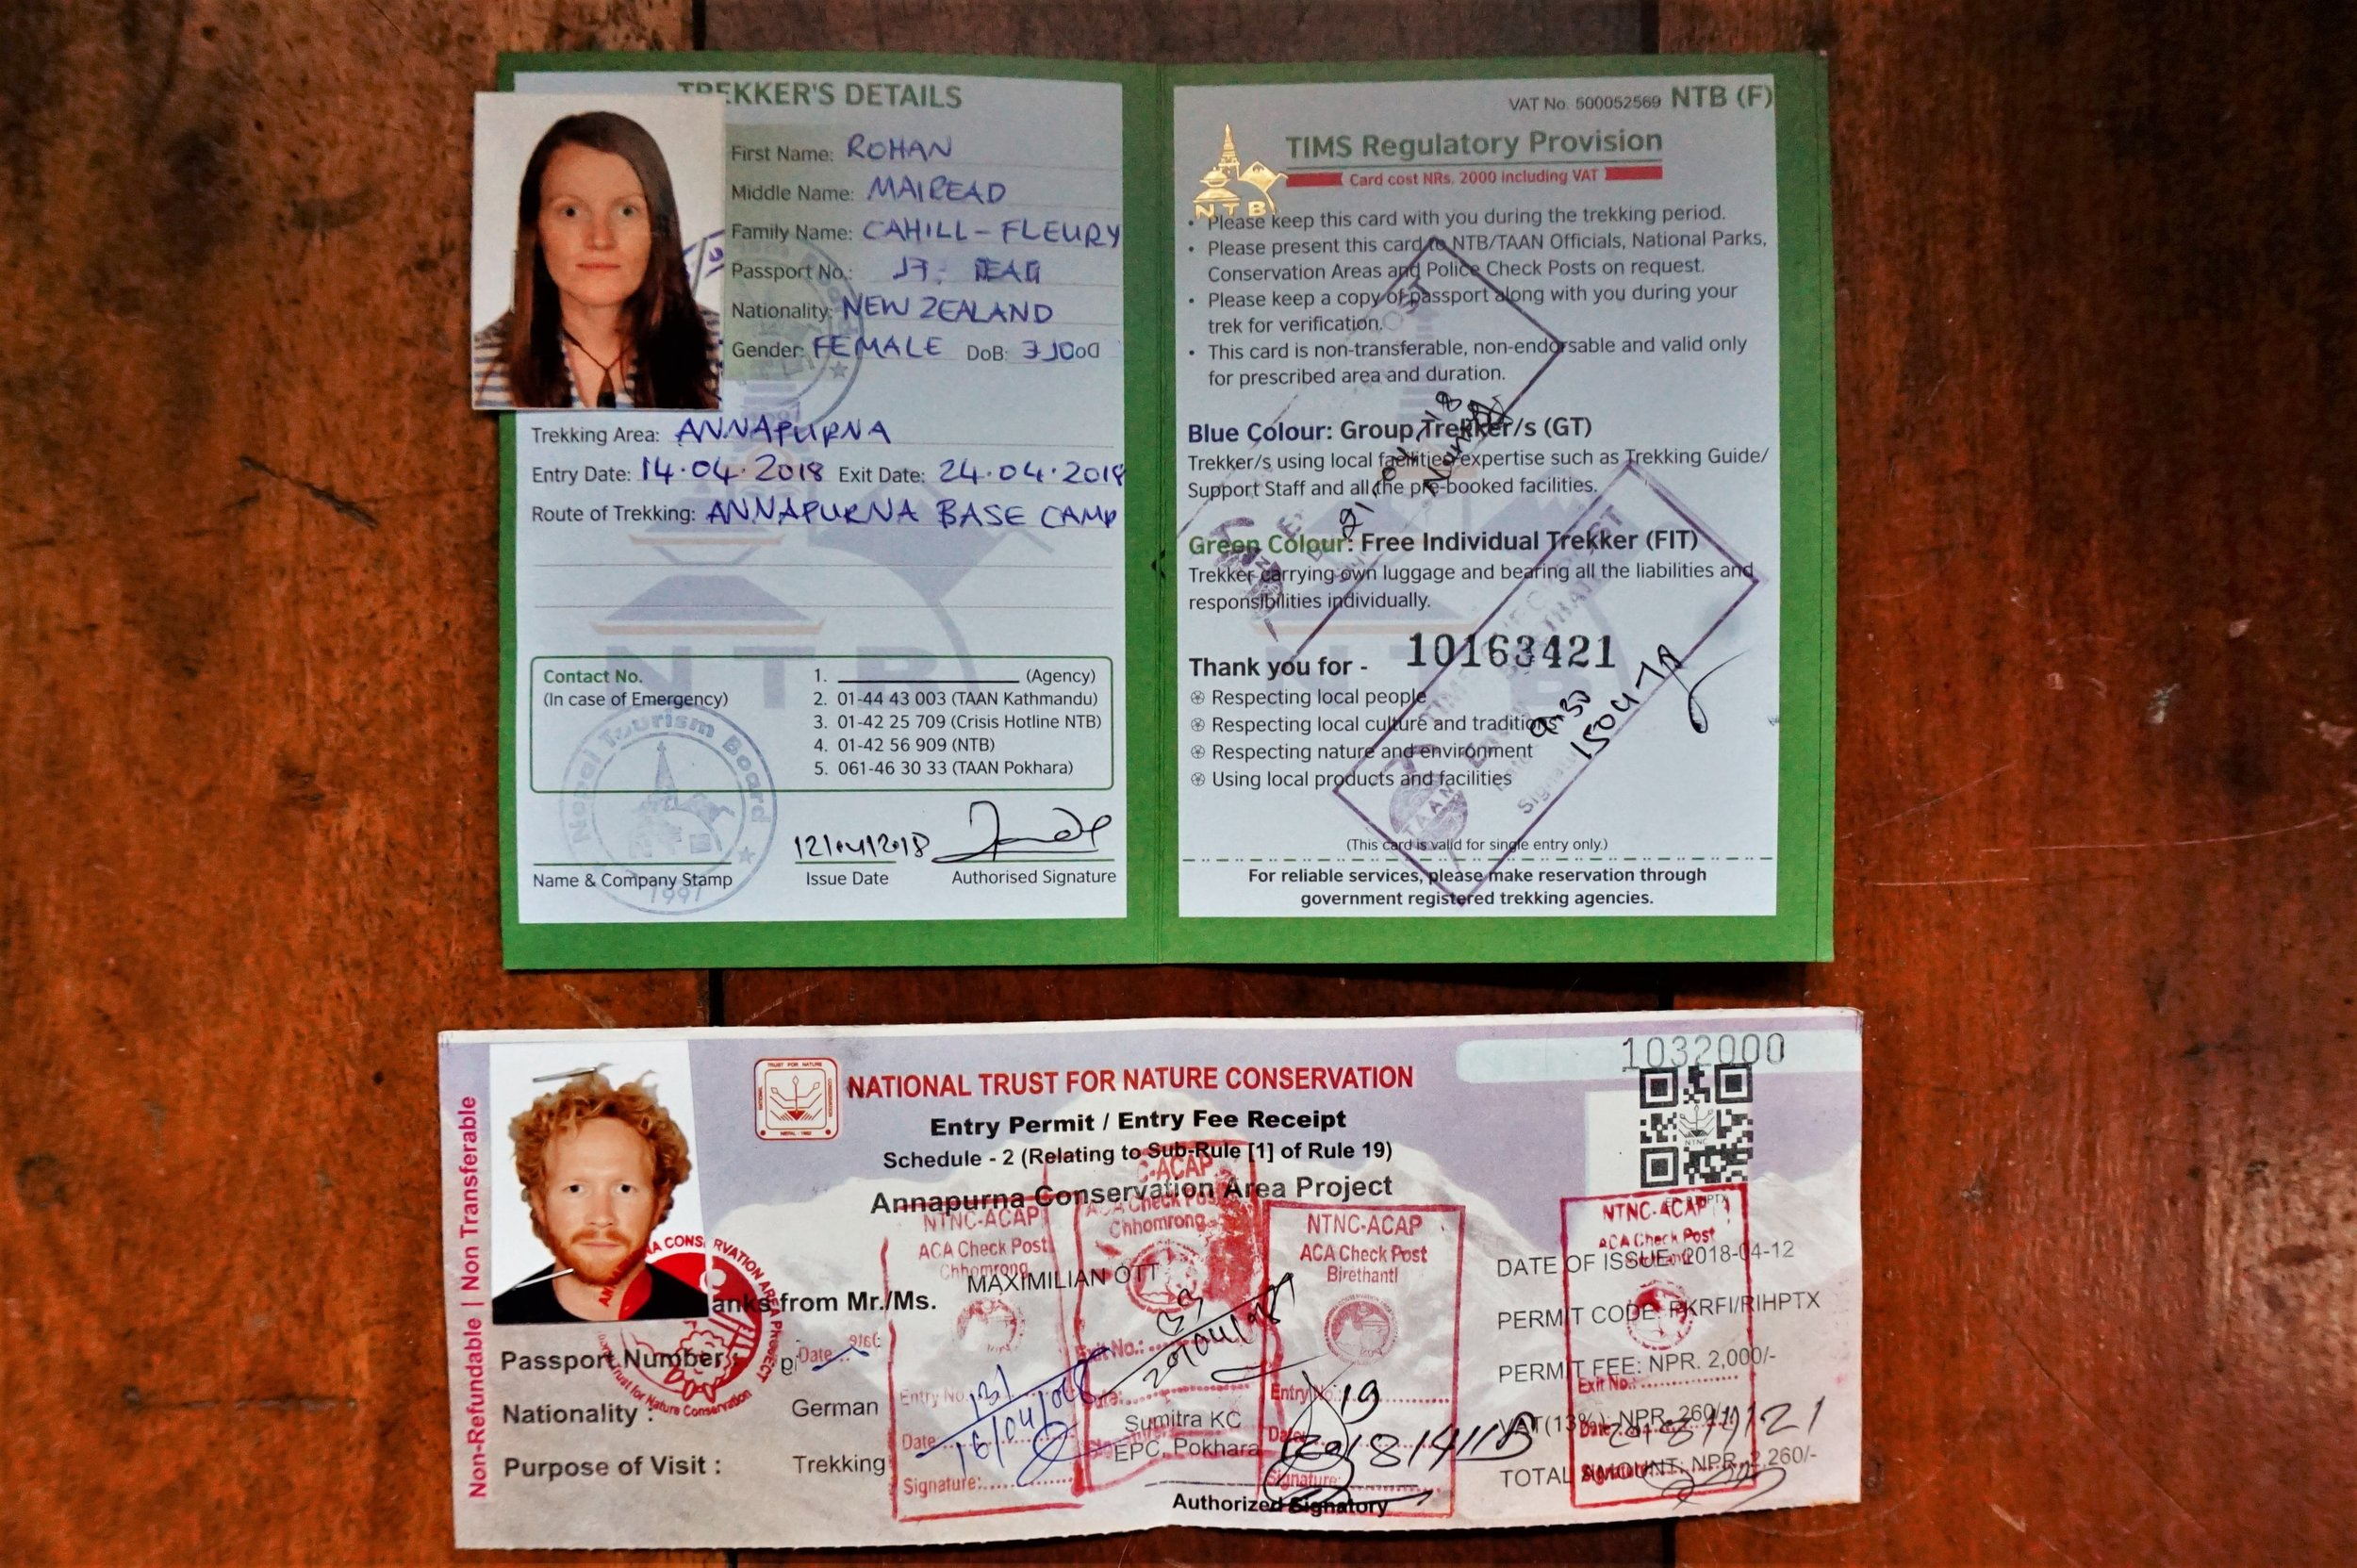 Permits are required for the Annapurna Base Camp trek.